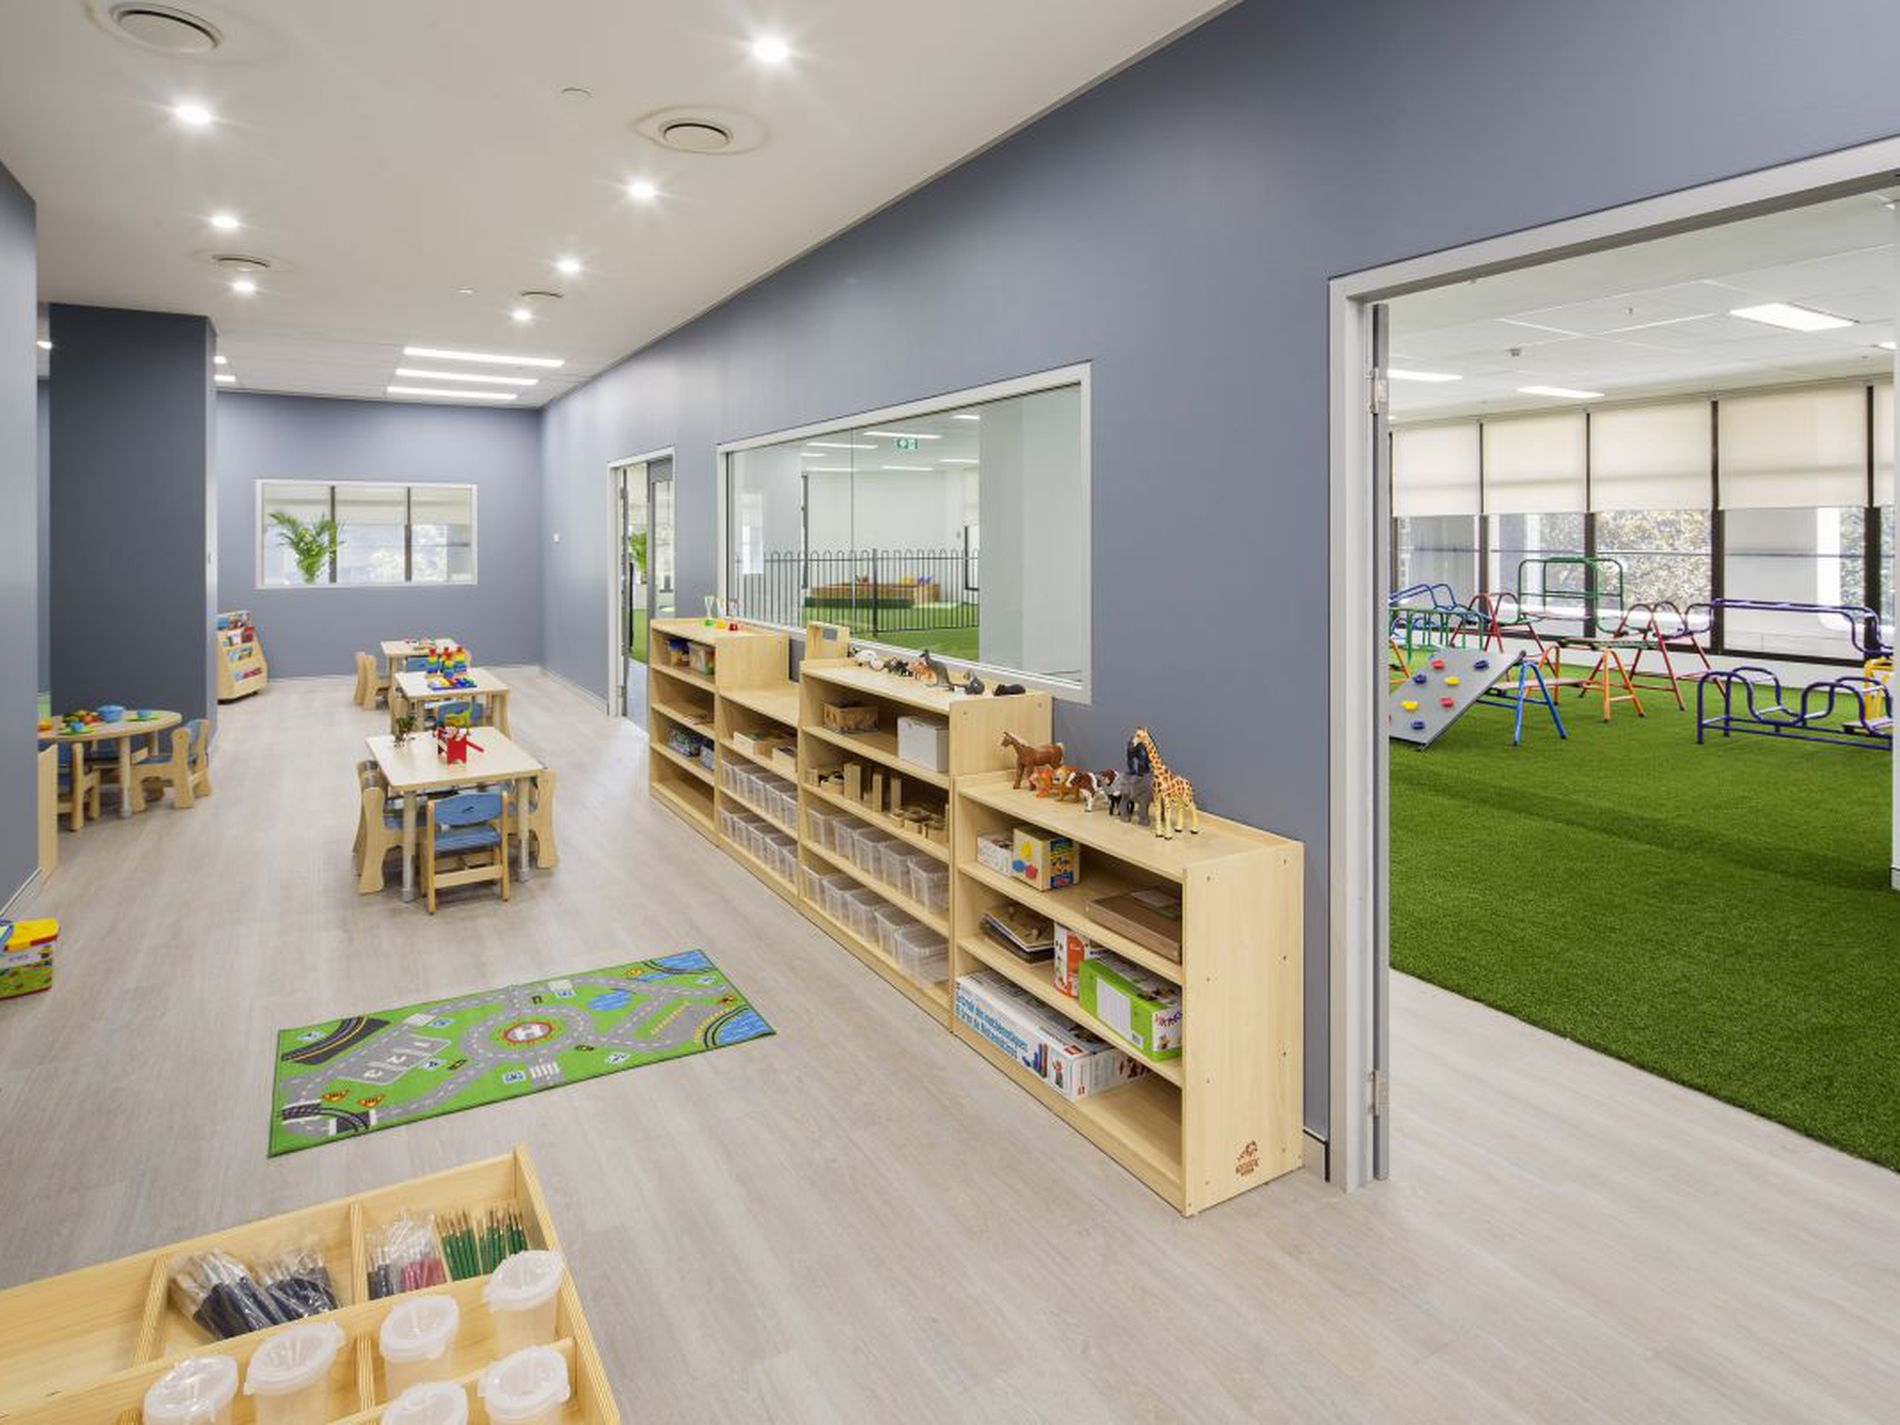 JF20008 - Childcare 59 spaces CBD city